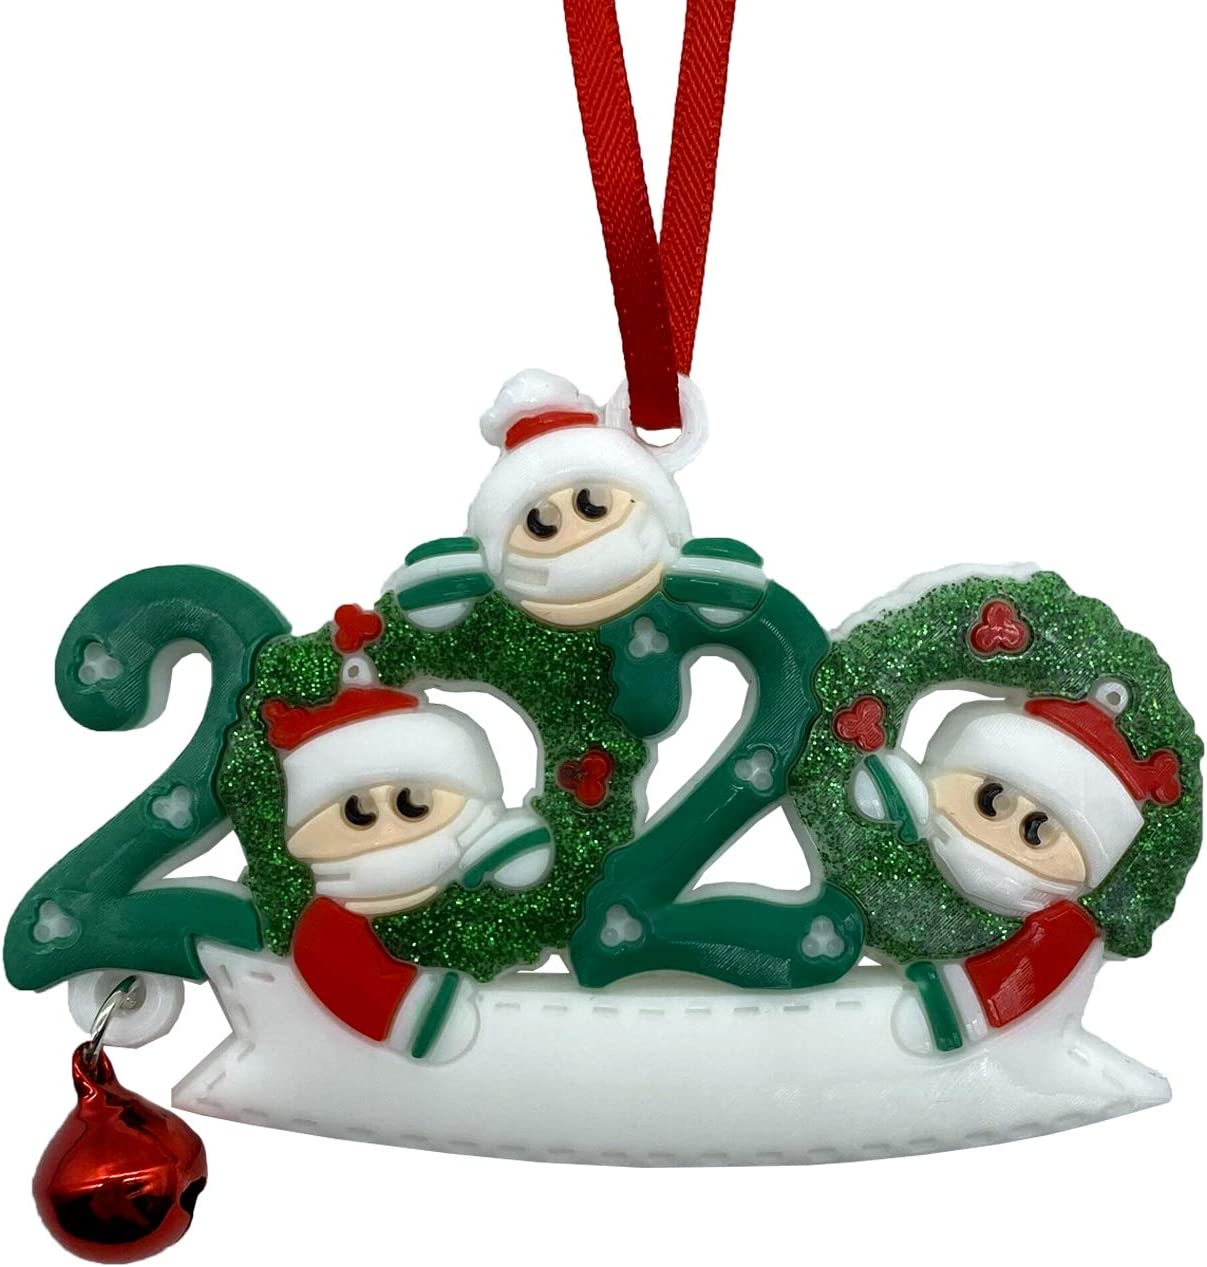 Lechay 2020 Christmas Ornaments, Merry Christmas Decorations Newest Theme Creative Gift Tree Ornament Kit Hanging Accessories for Home Indoor Outdoor Decor (Family of 3)